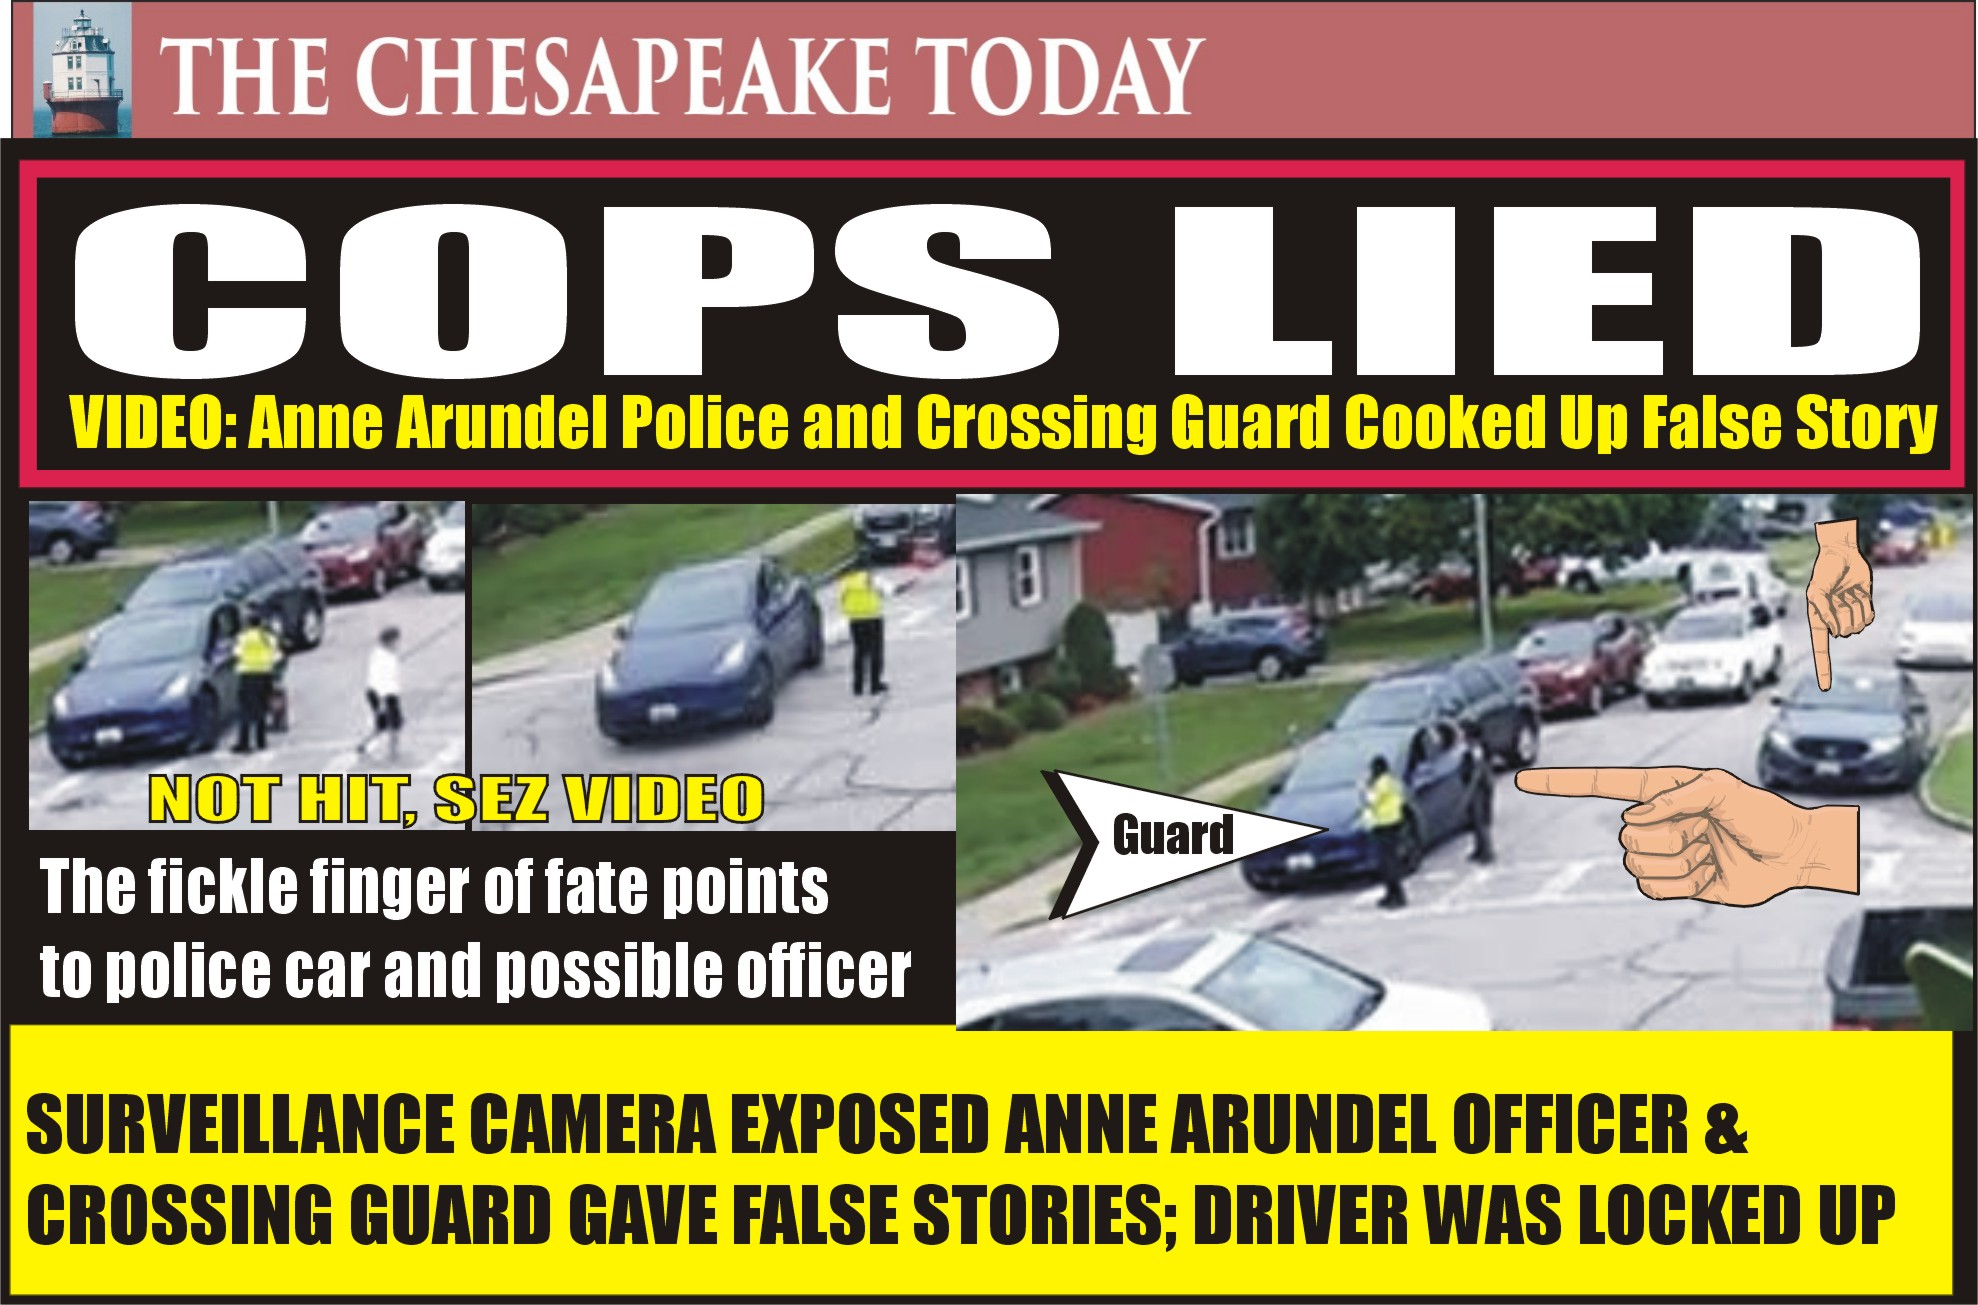 ANNE ARUNDEL POLICE LIED: Video shows Anne Arundel Police Concocted Story of Impatient Tesla Driver Striking School Crossing Guard